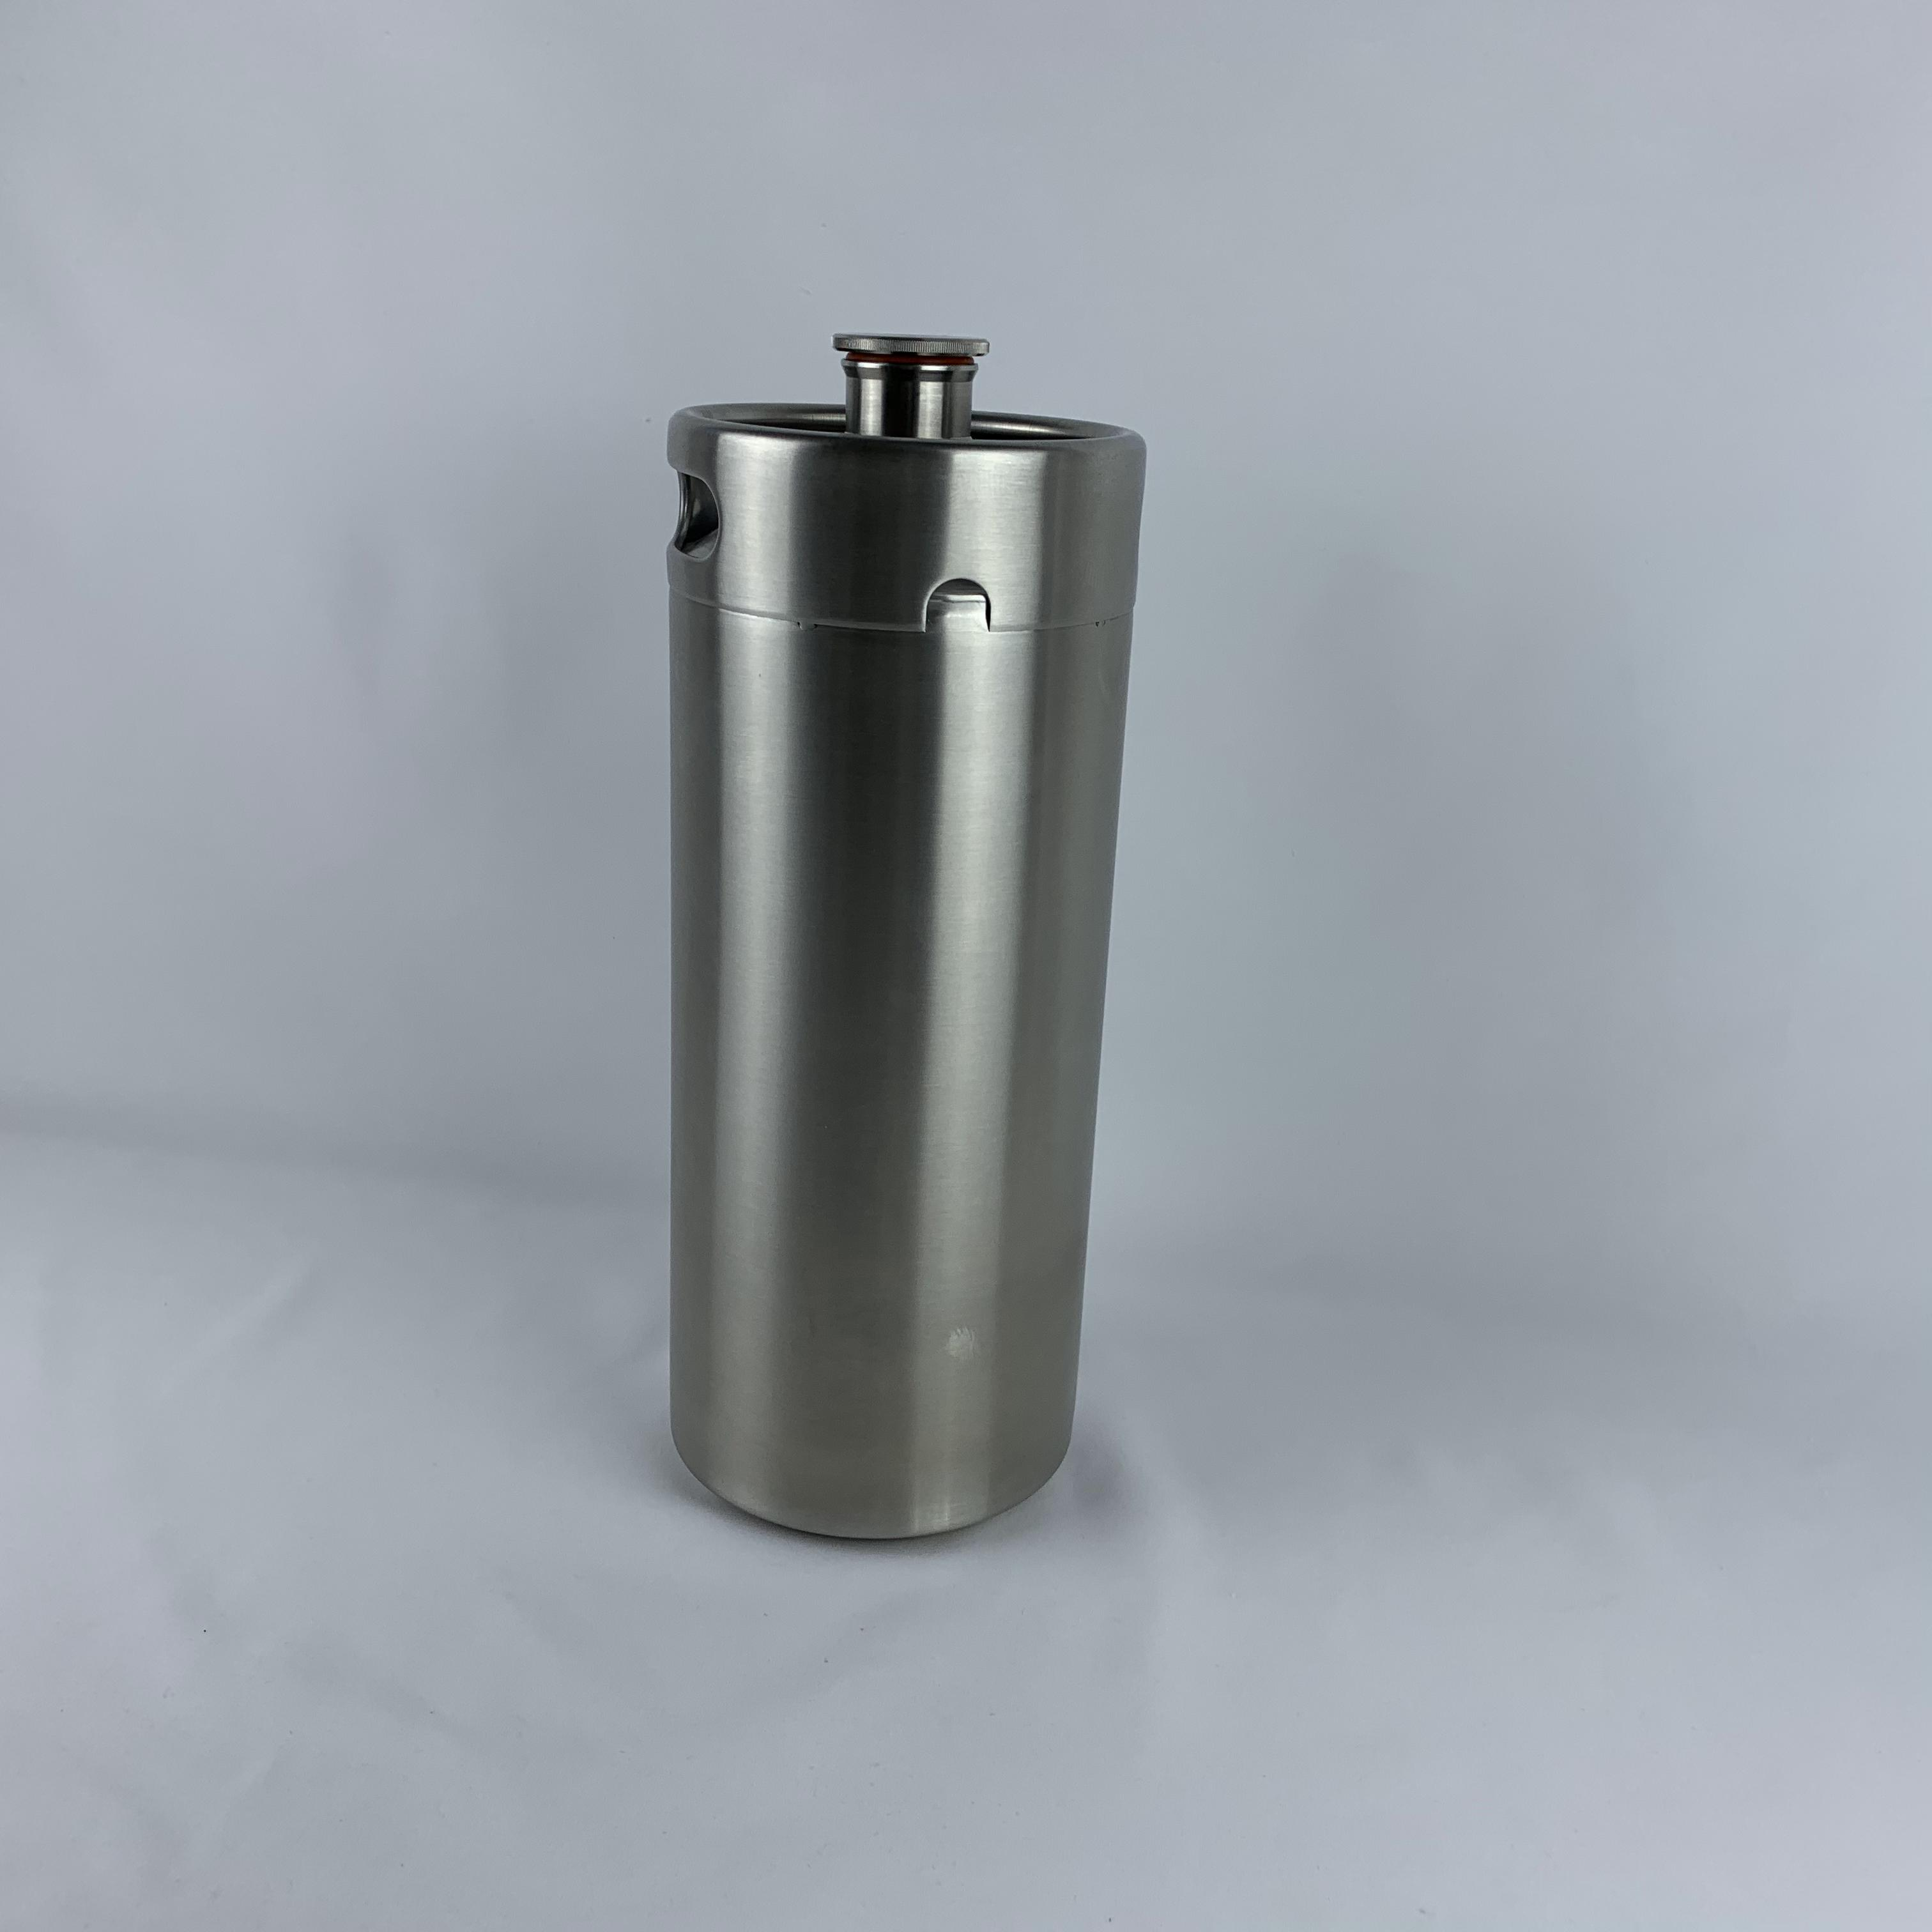 Party 4L pressurized growler craft made of stainless steel portable and polished 4L growler tap mini keg spear dispenser image